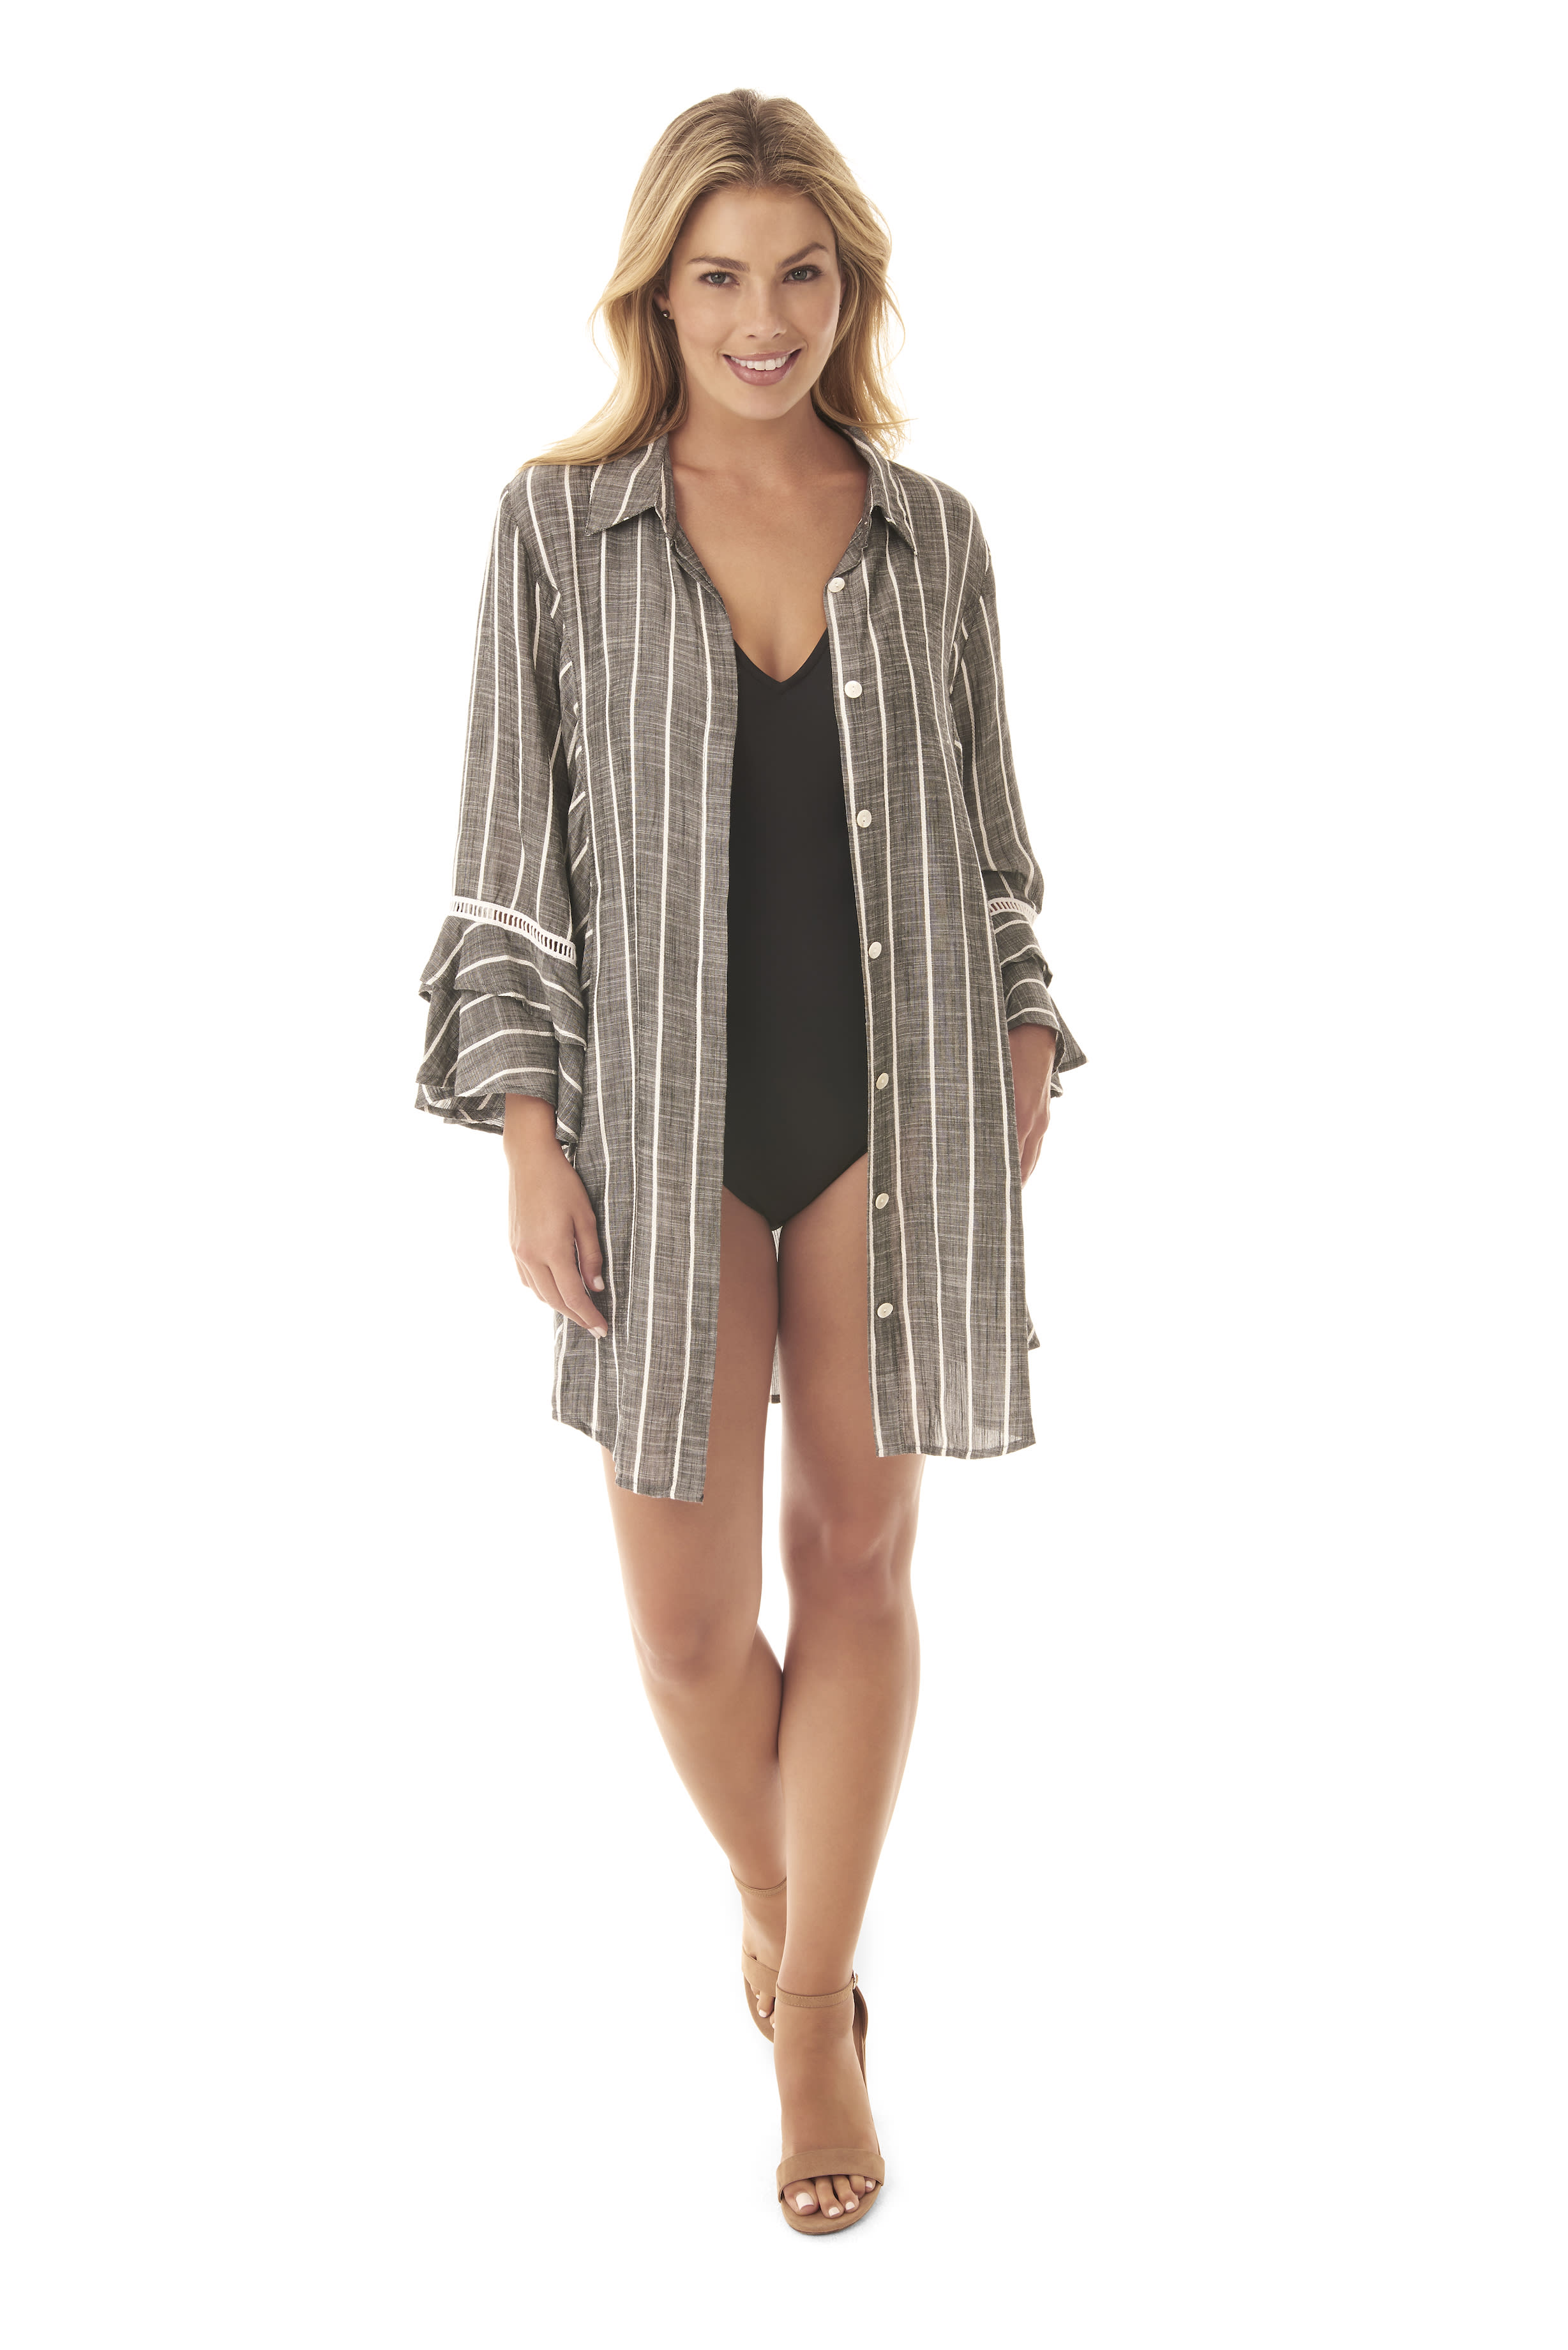 Penbrooke Ruffle Sleeve Oversize Shirt Swimsuit Cover-Up - Grey - Front